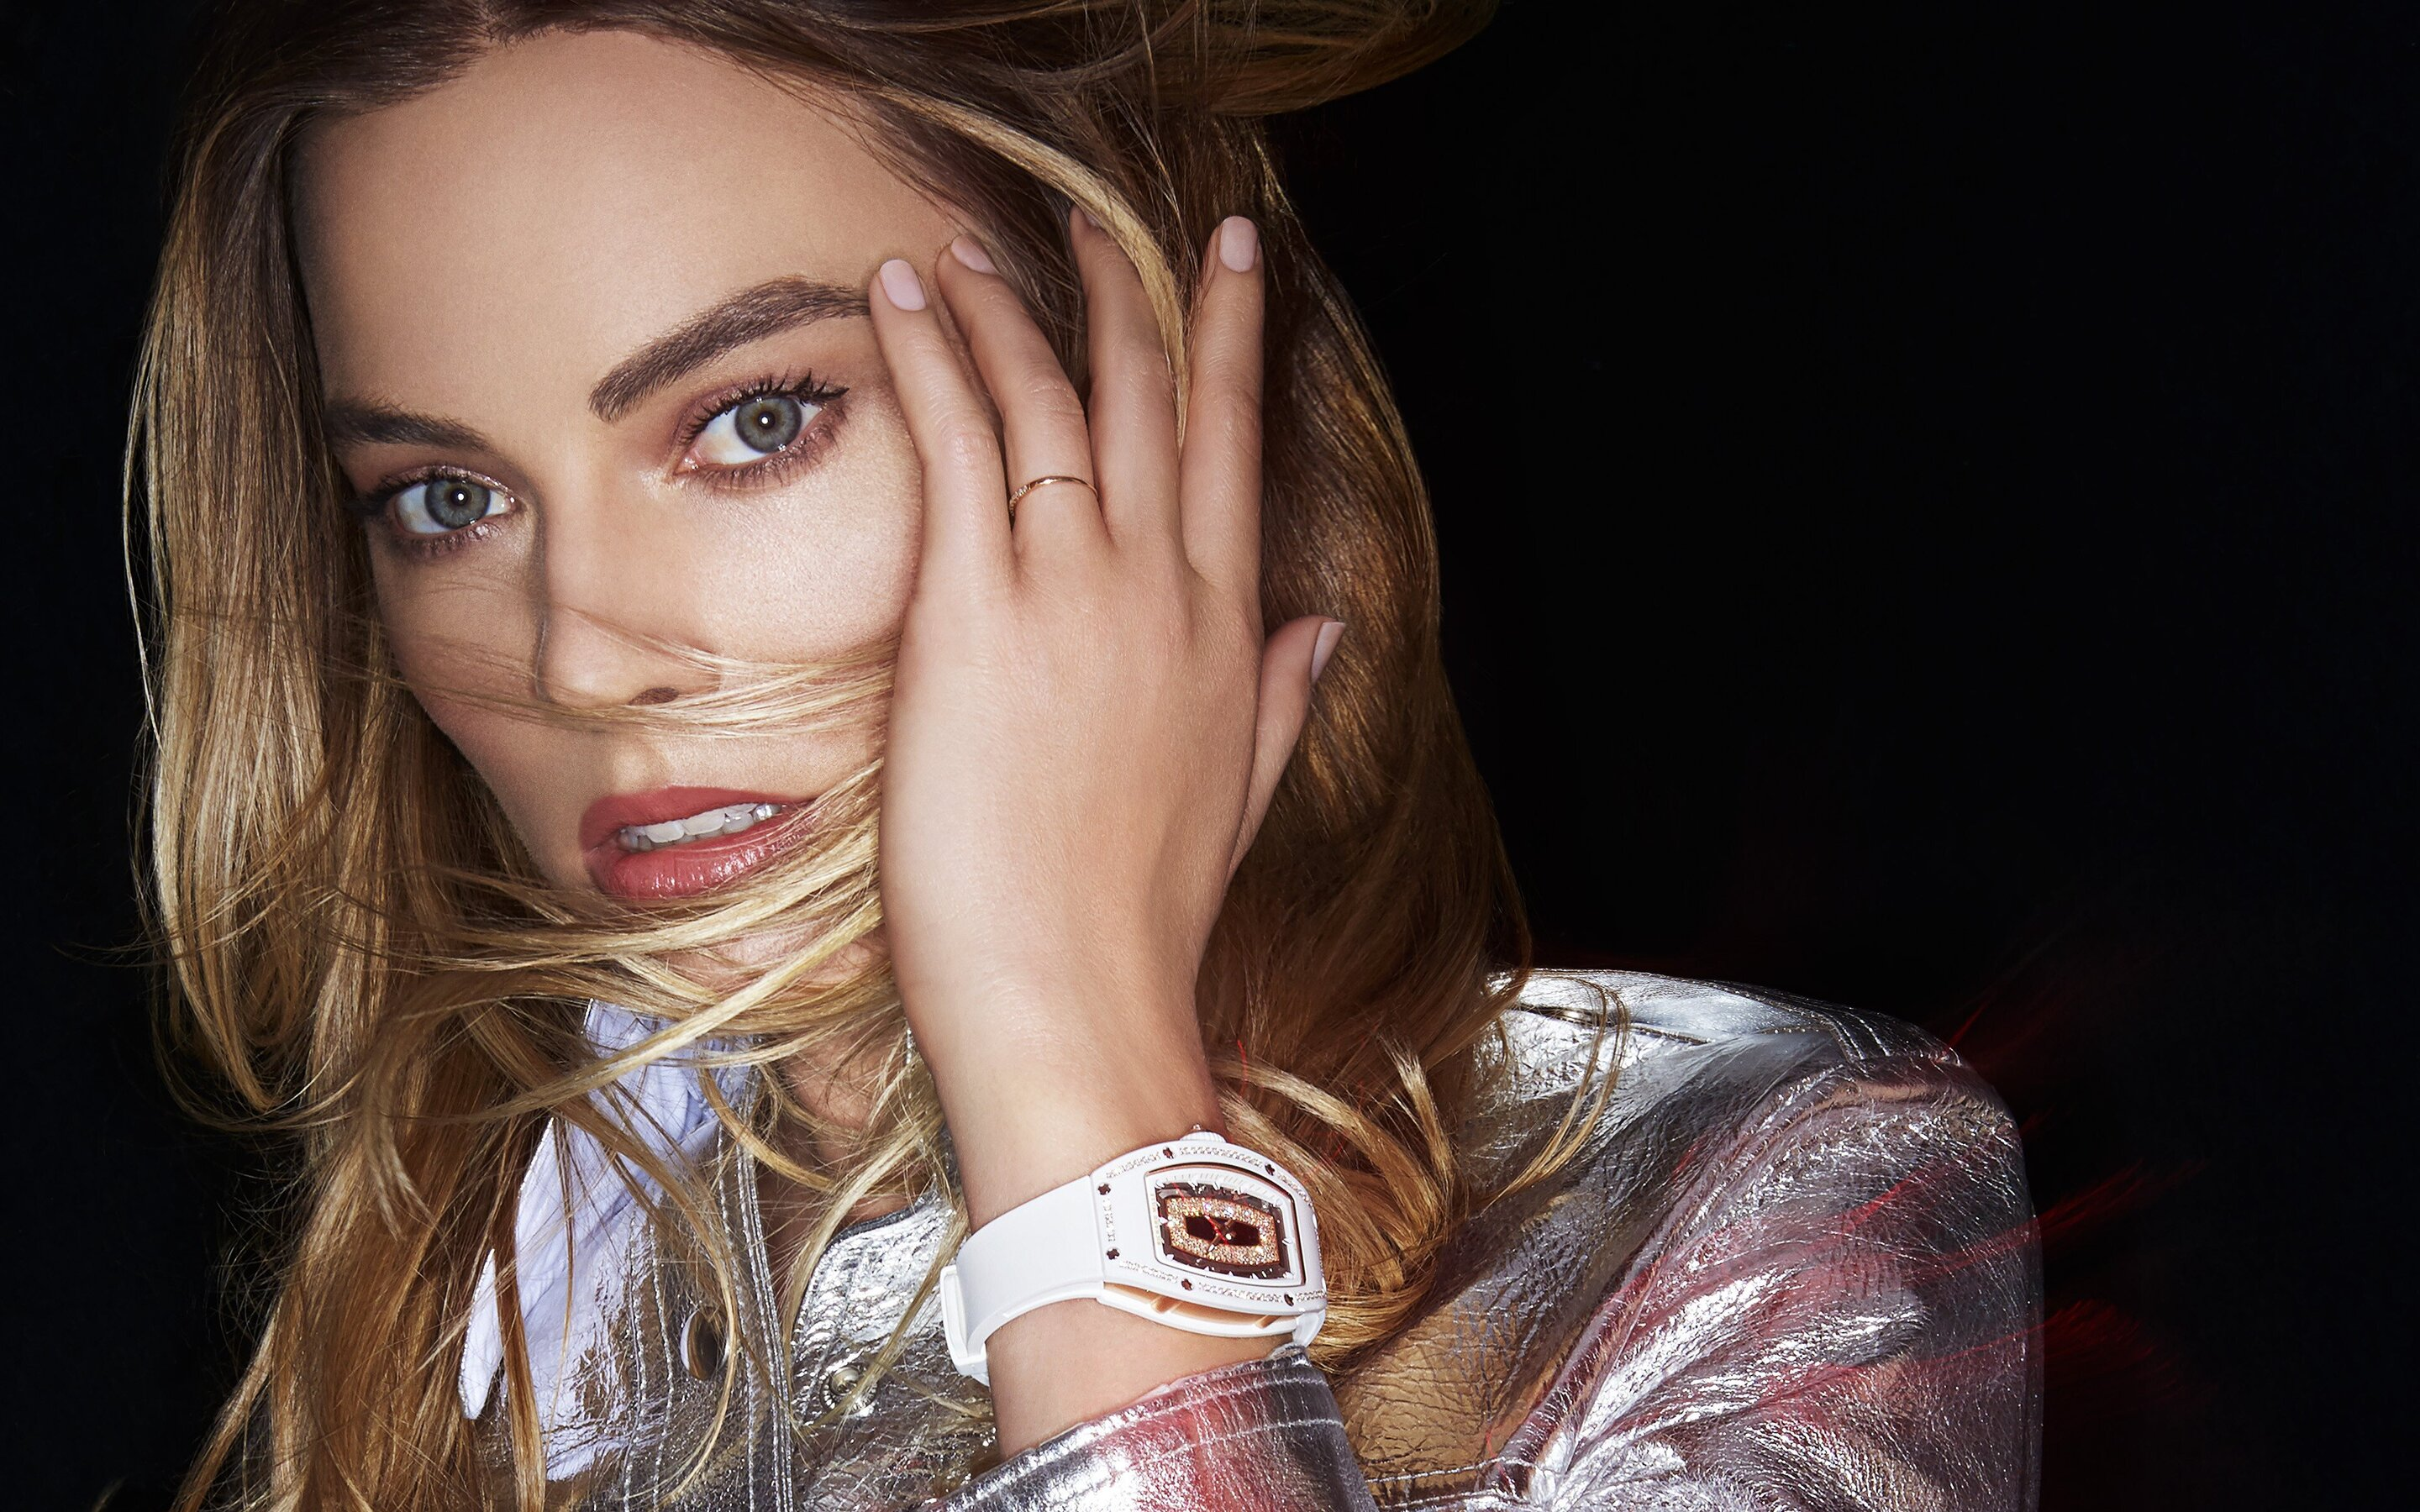 margot-robbie-richard-mille-4k-bk.jpg